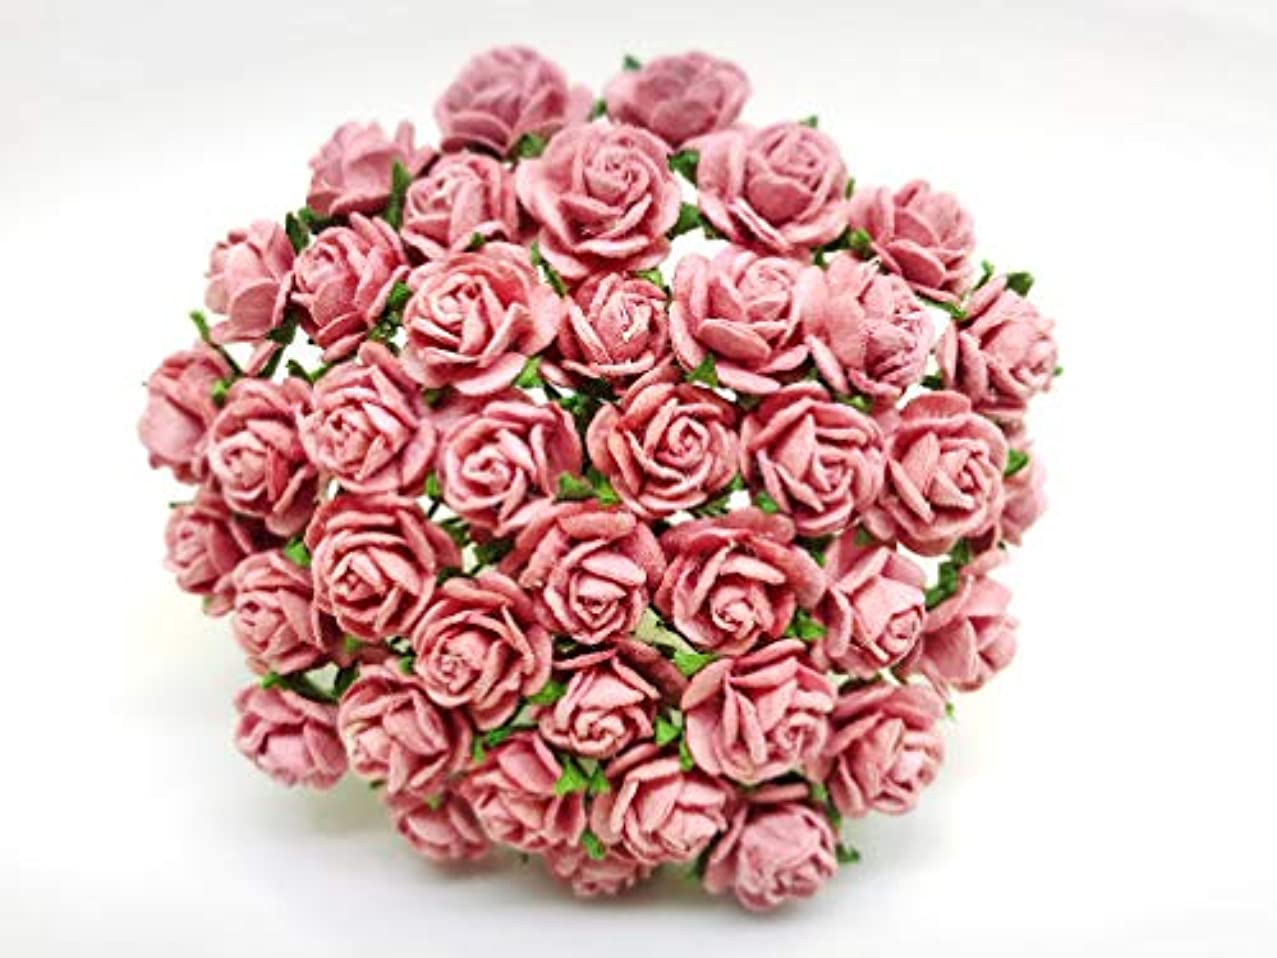 Tyga_Thai Brand 50 pcs. Dusty Pink Color Rose Mulberry Paper Flower Craft Handmade Wedding 10 mm. Scrapbook for so Many Card & Craft Projects CMR1-4#107 (MULBERRY-PAPAER-ROSE-10MM)